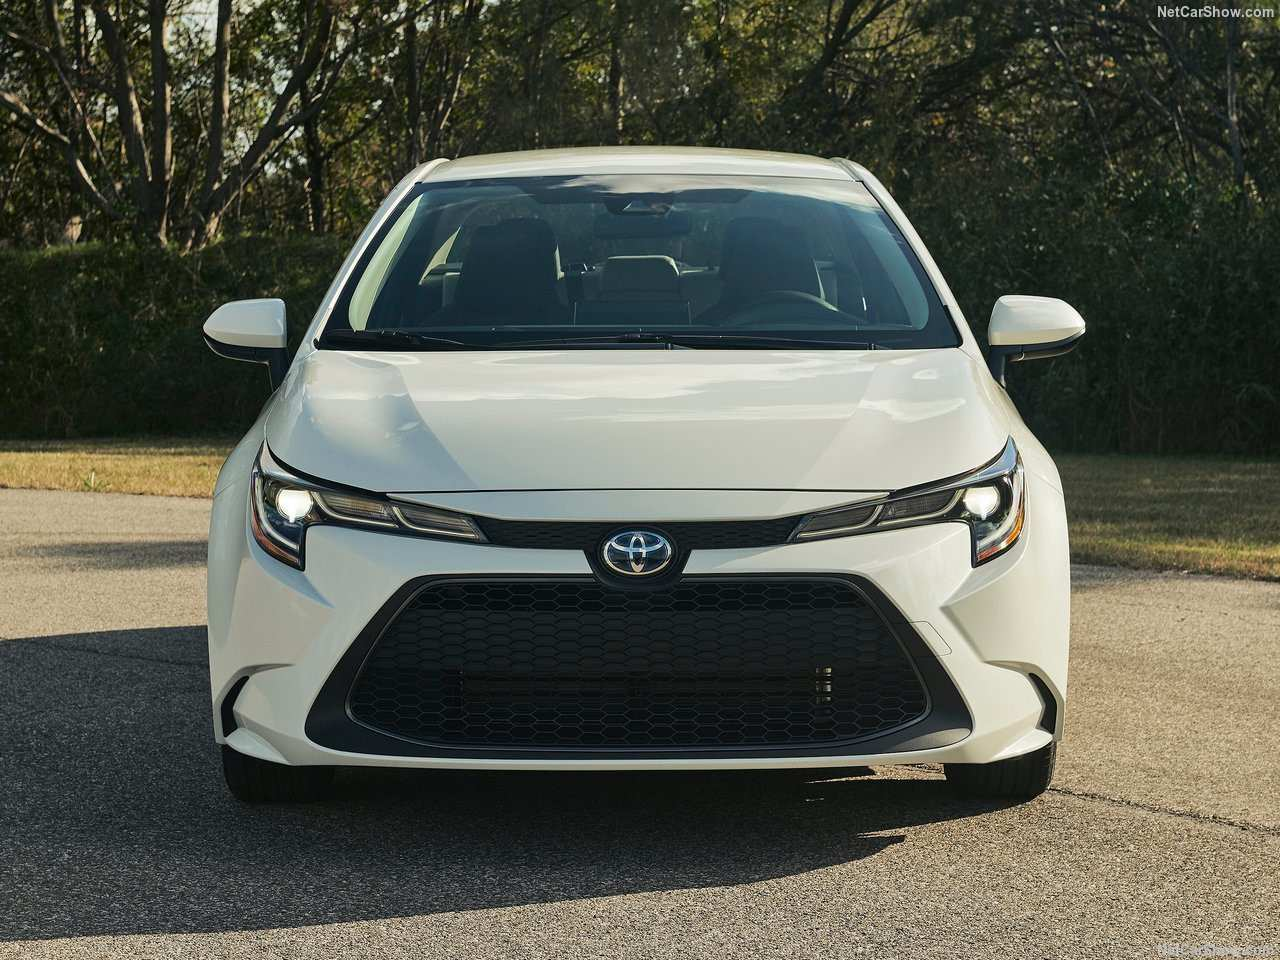 86 Best Toyota 2020 Vision First Drive